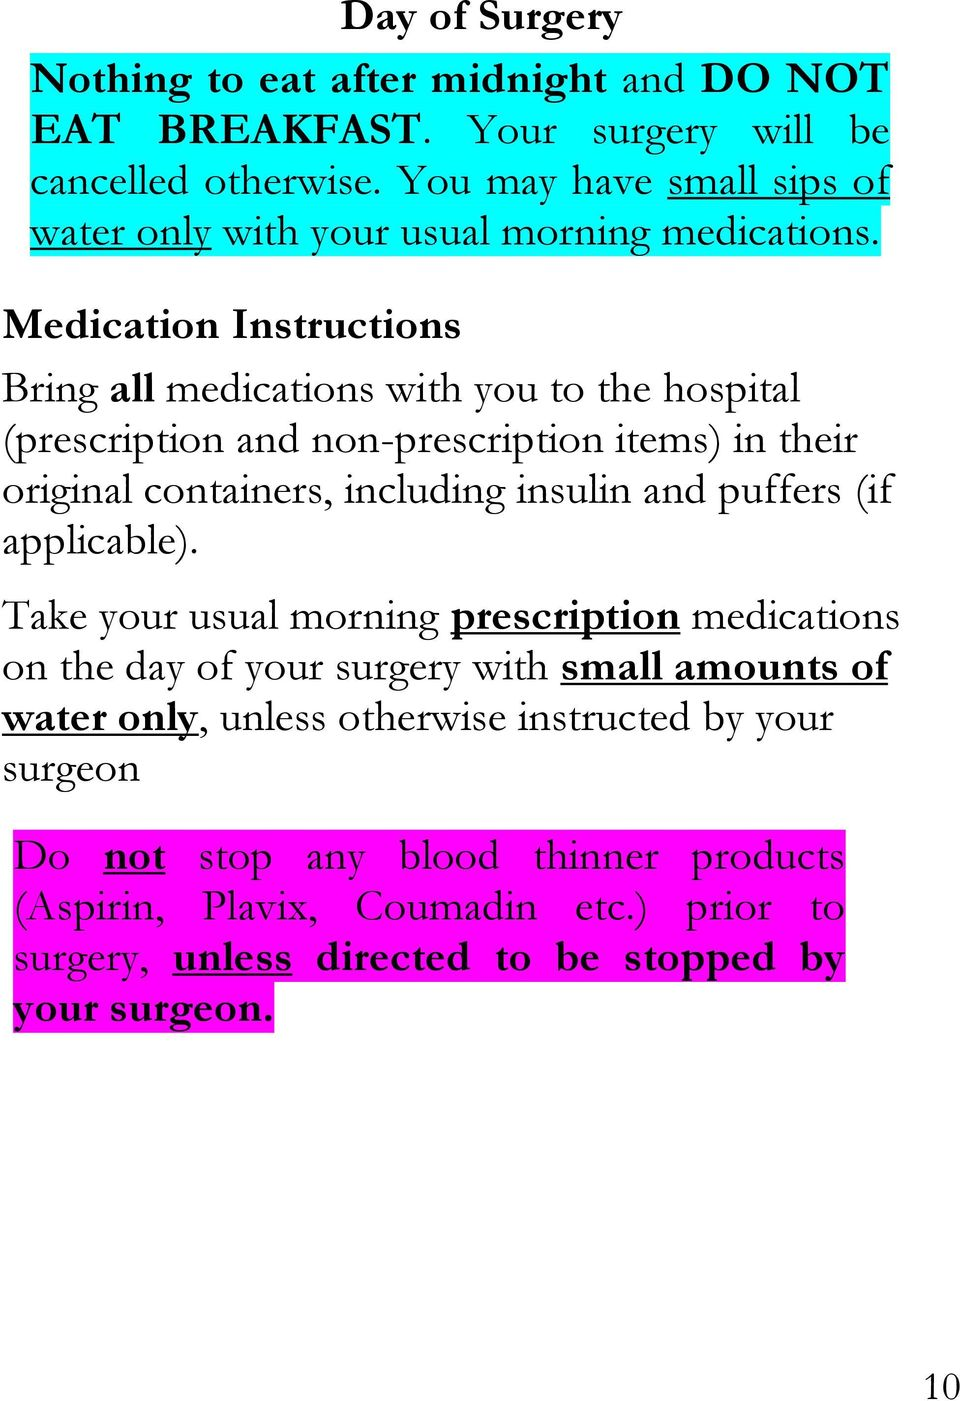 Medication Instructions Bring all medications with you to the hospital (prescription and non-prescription items) in their original containers, including insulin and